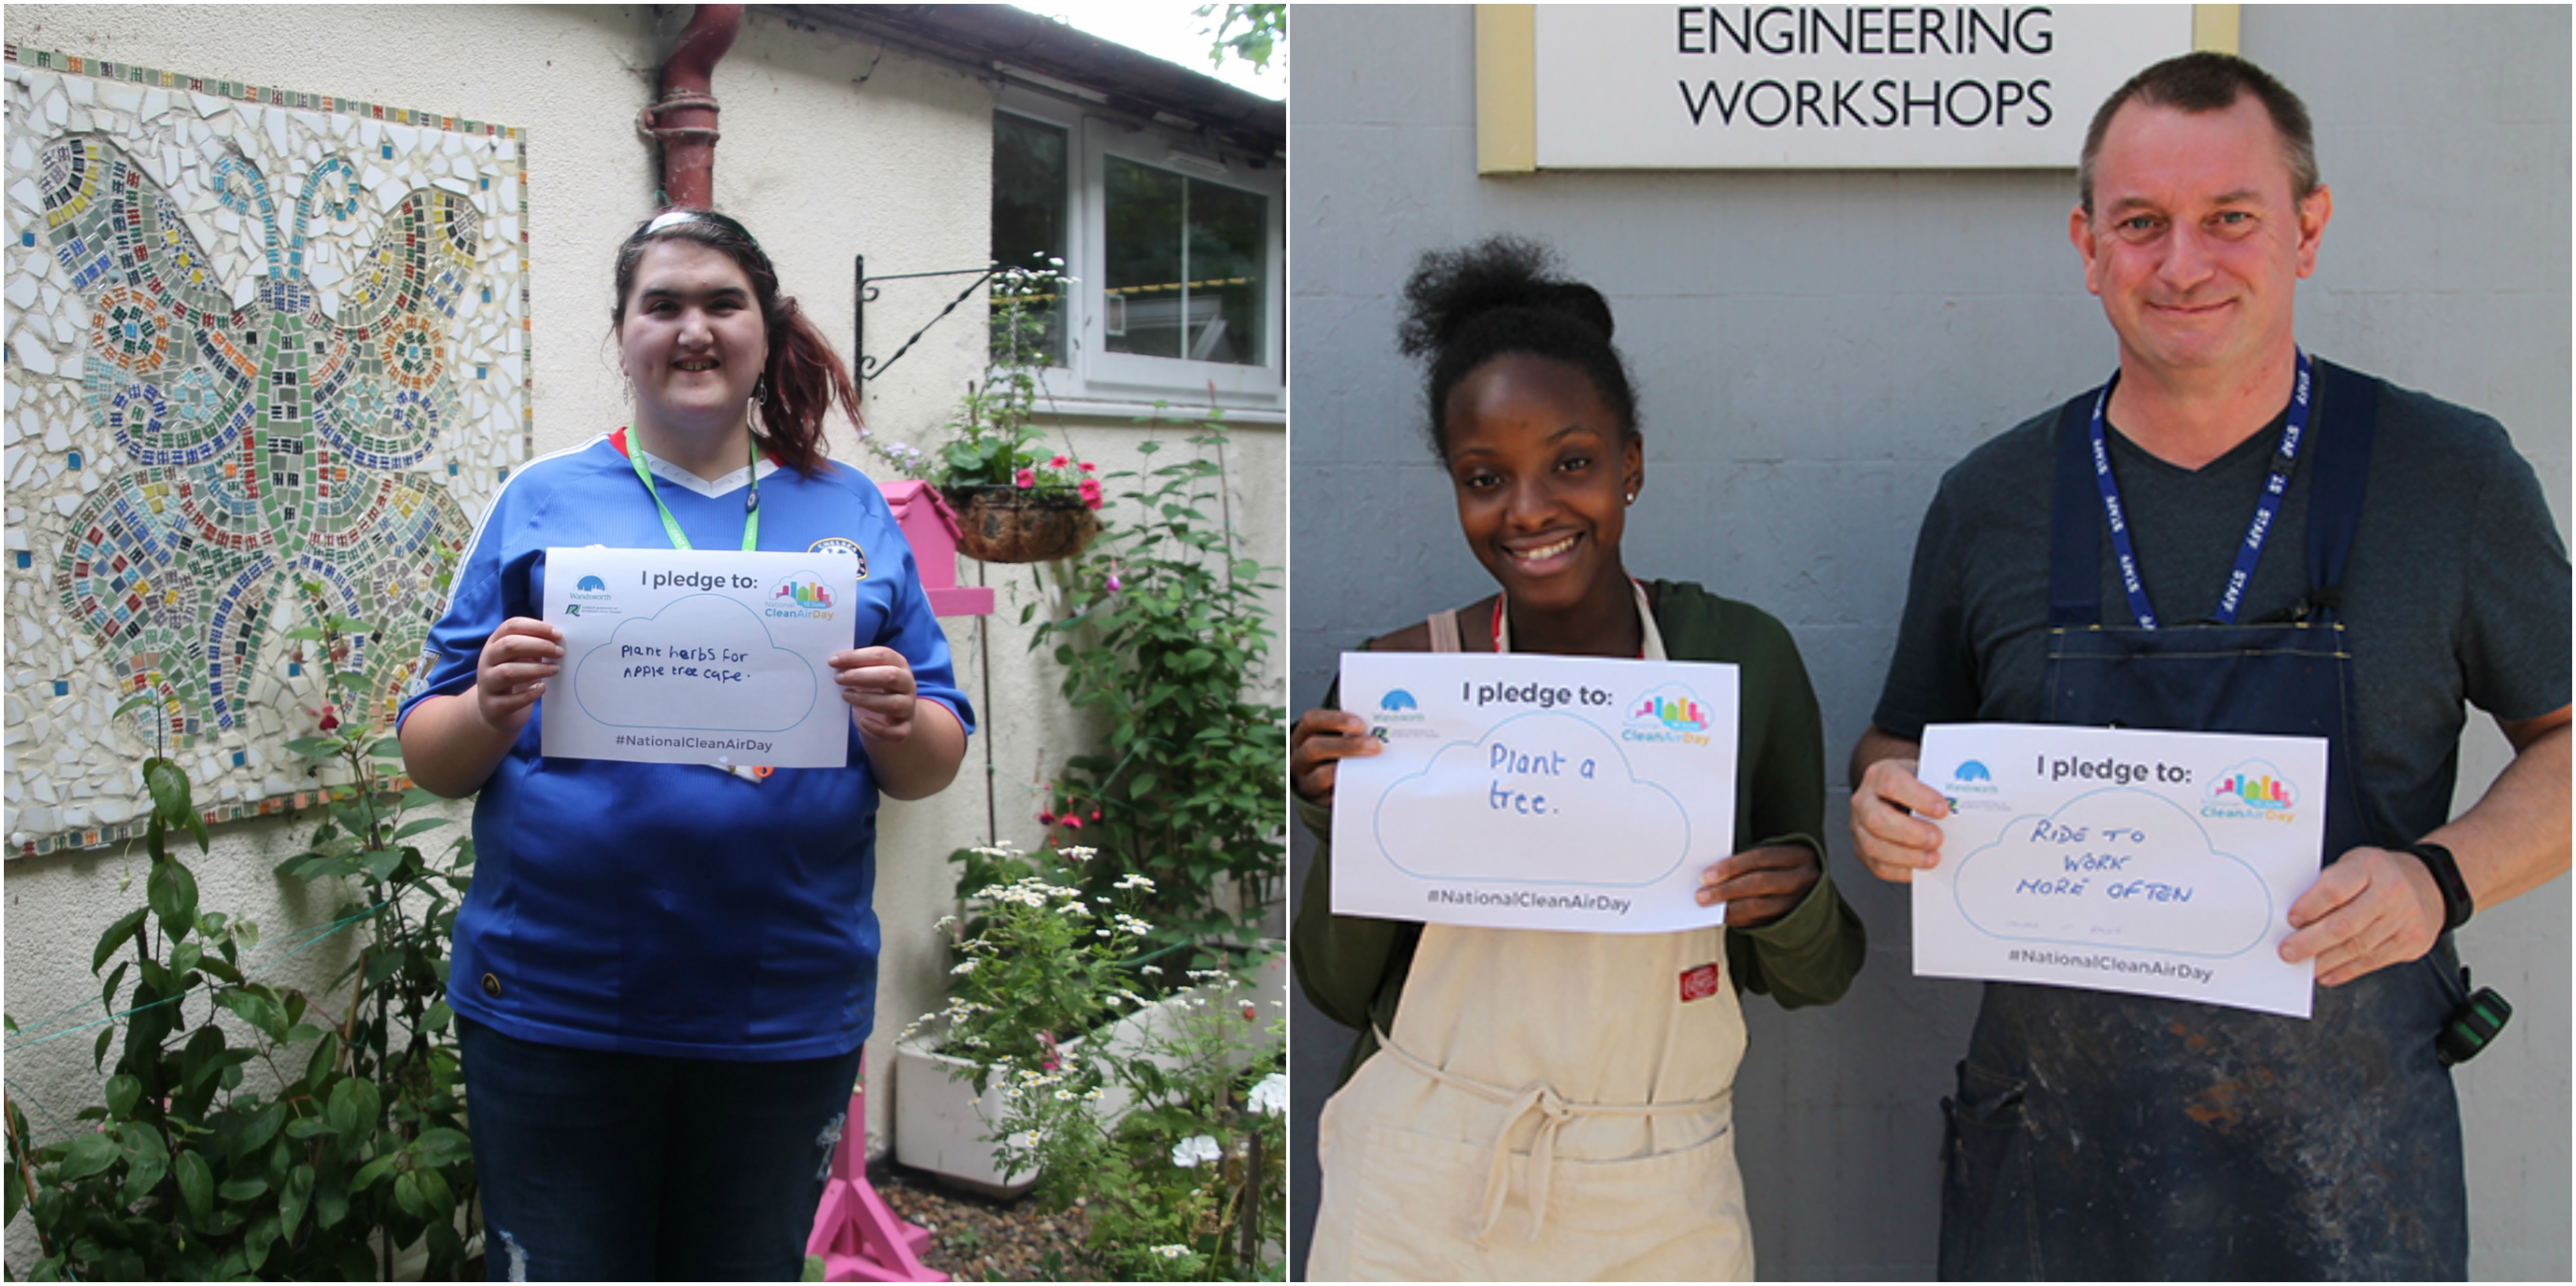 RuTC Staff and Students Support National Clean Air Day 7